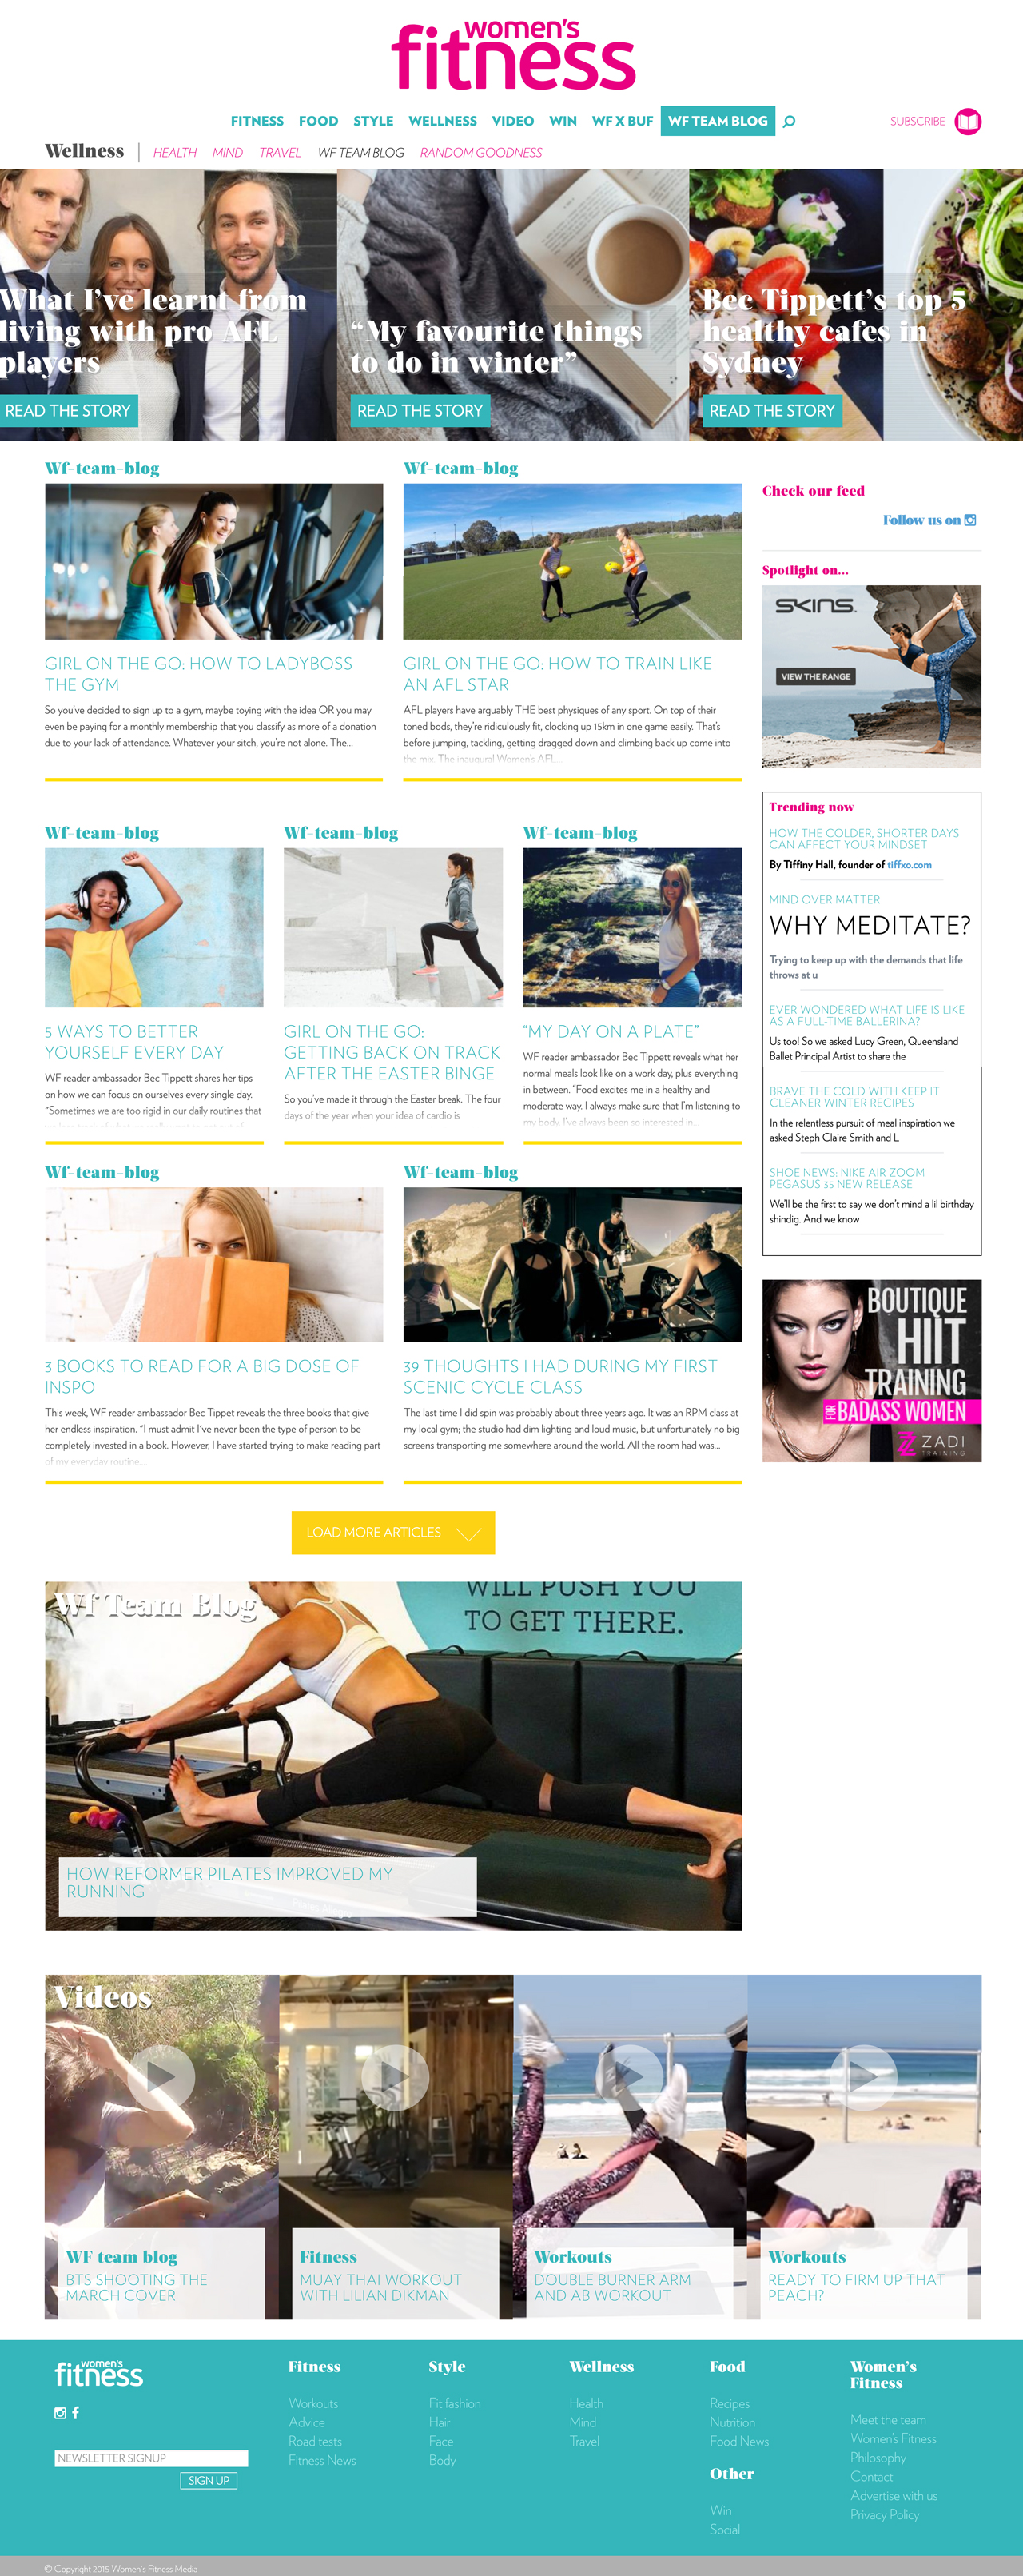 womens-fitness-6-whole-page